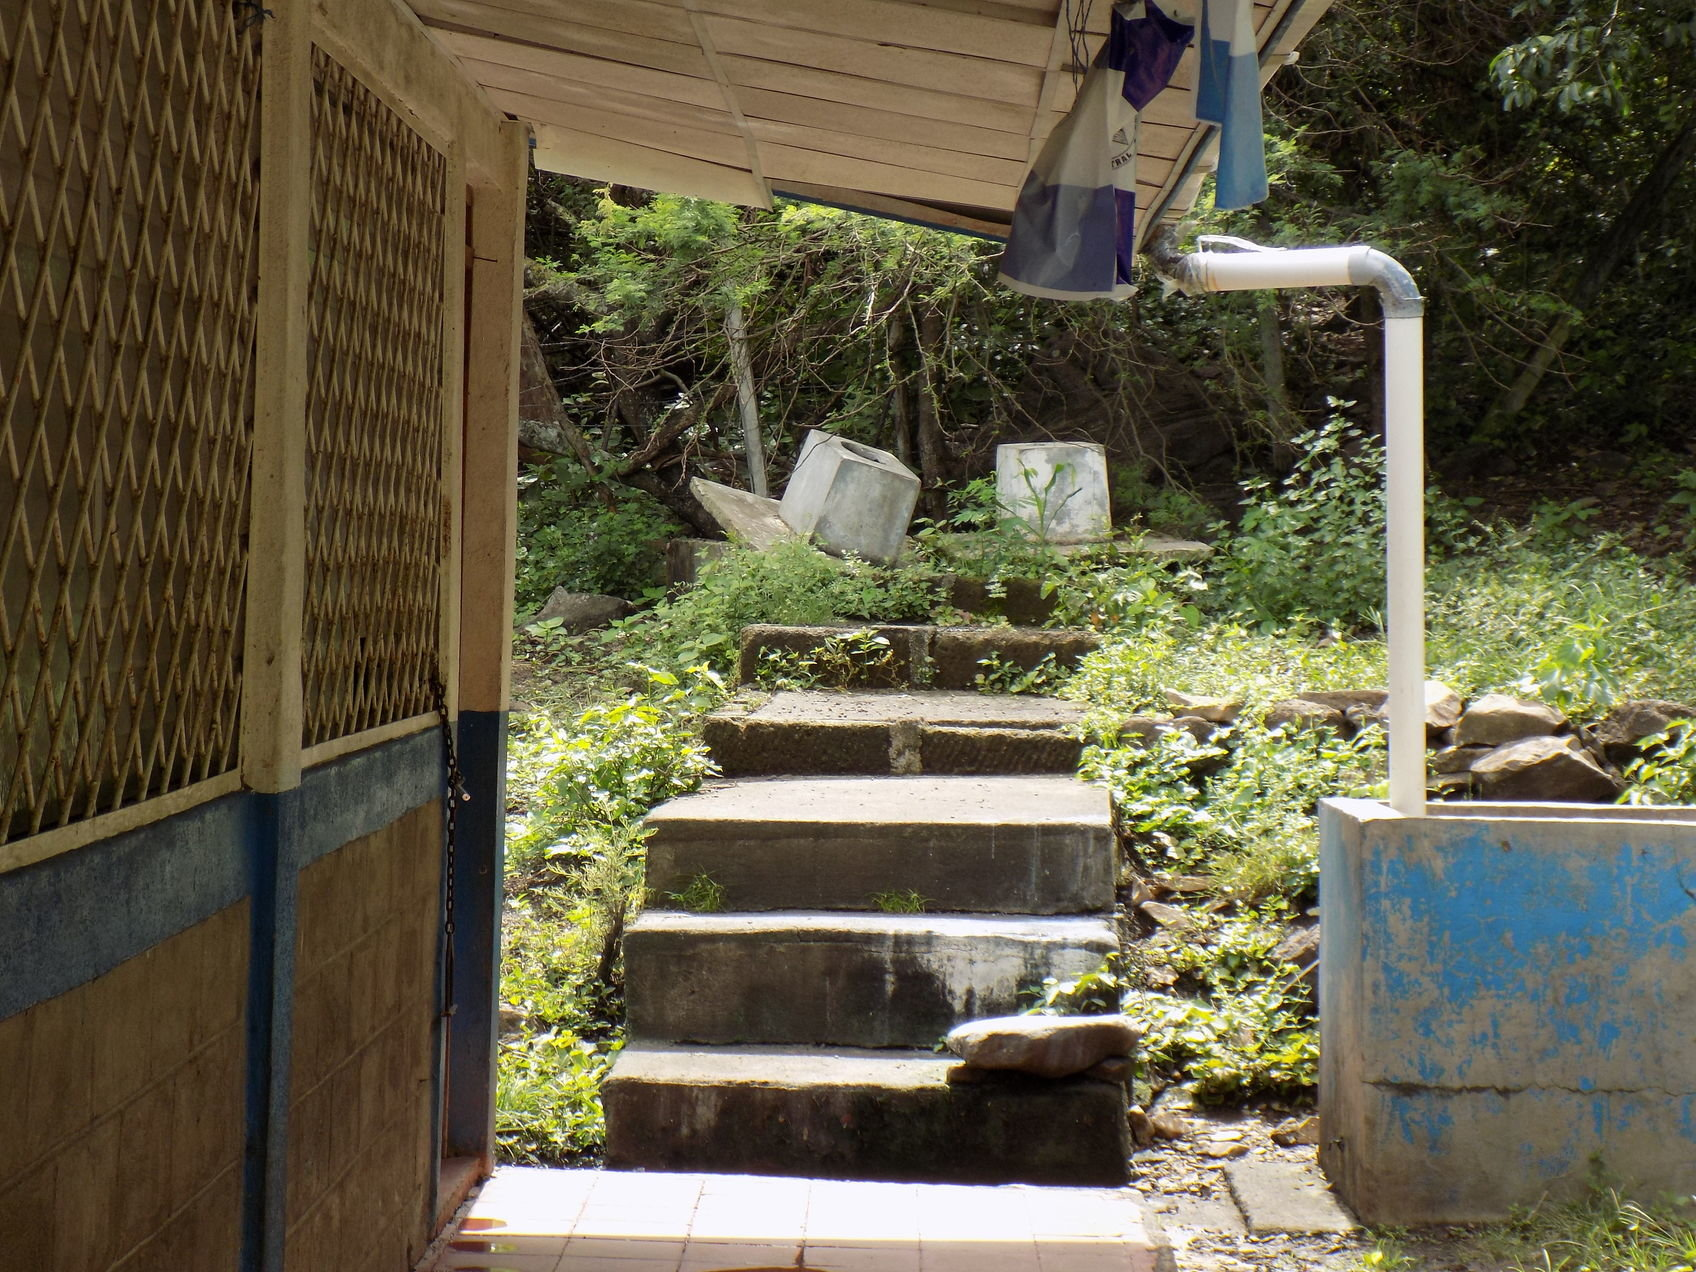 PHOTO PROVIDED  Dilapidated latrines sit a short distance away outside El Madrono school in Nicaragua. Sumter High School students have contributed to a service-learning project that is providing new latrines at the school.